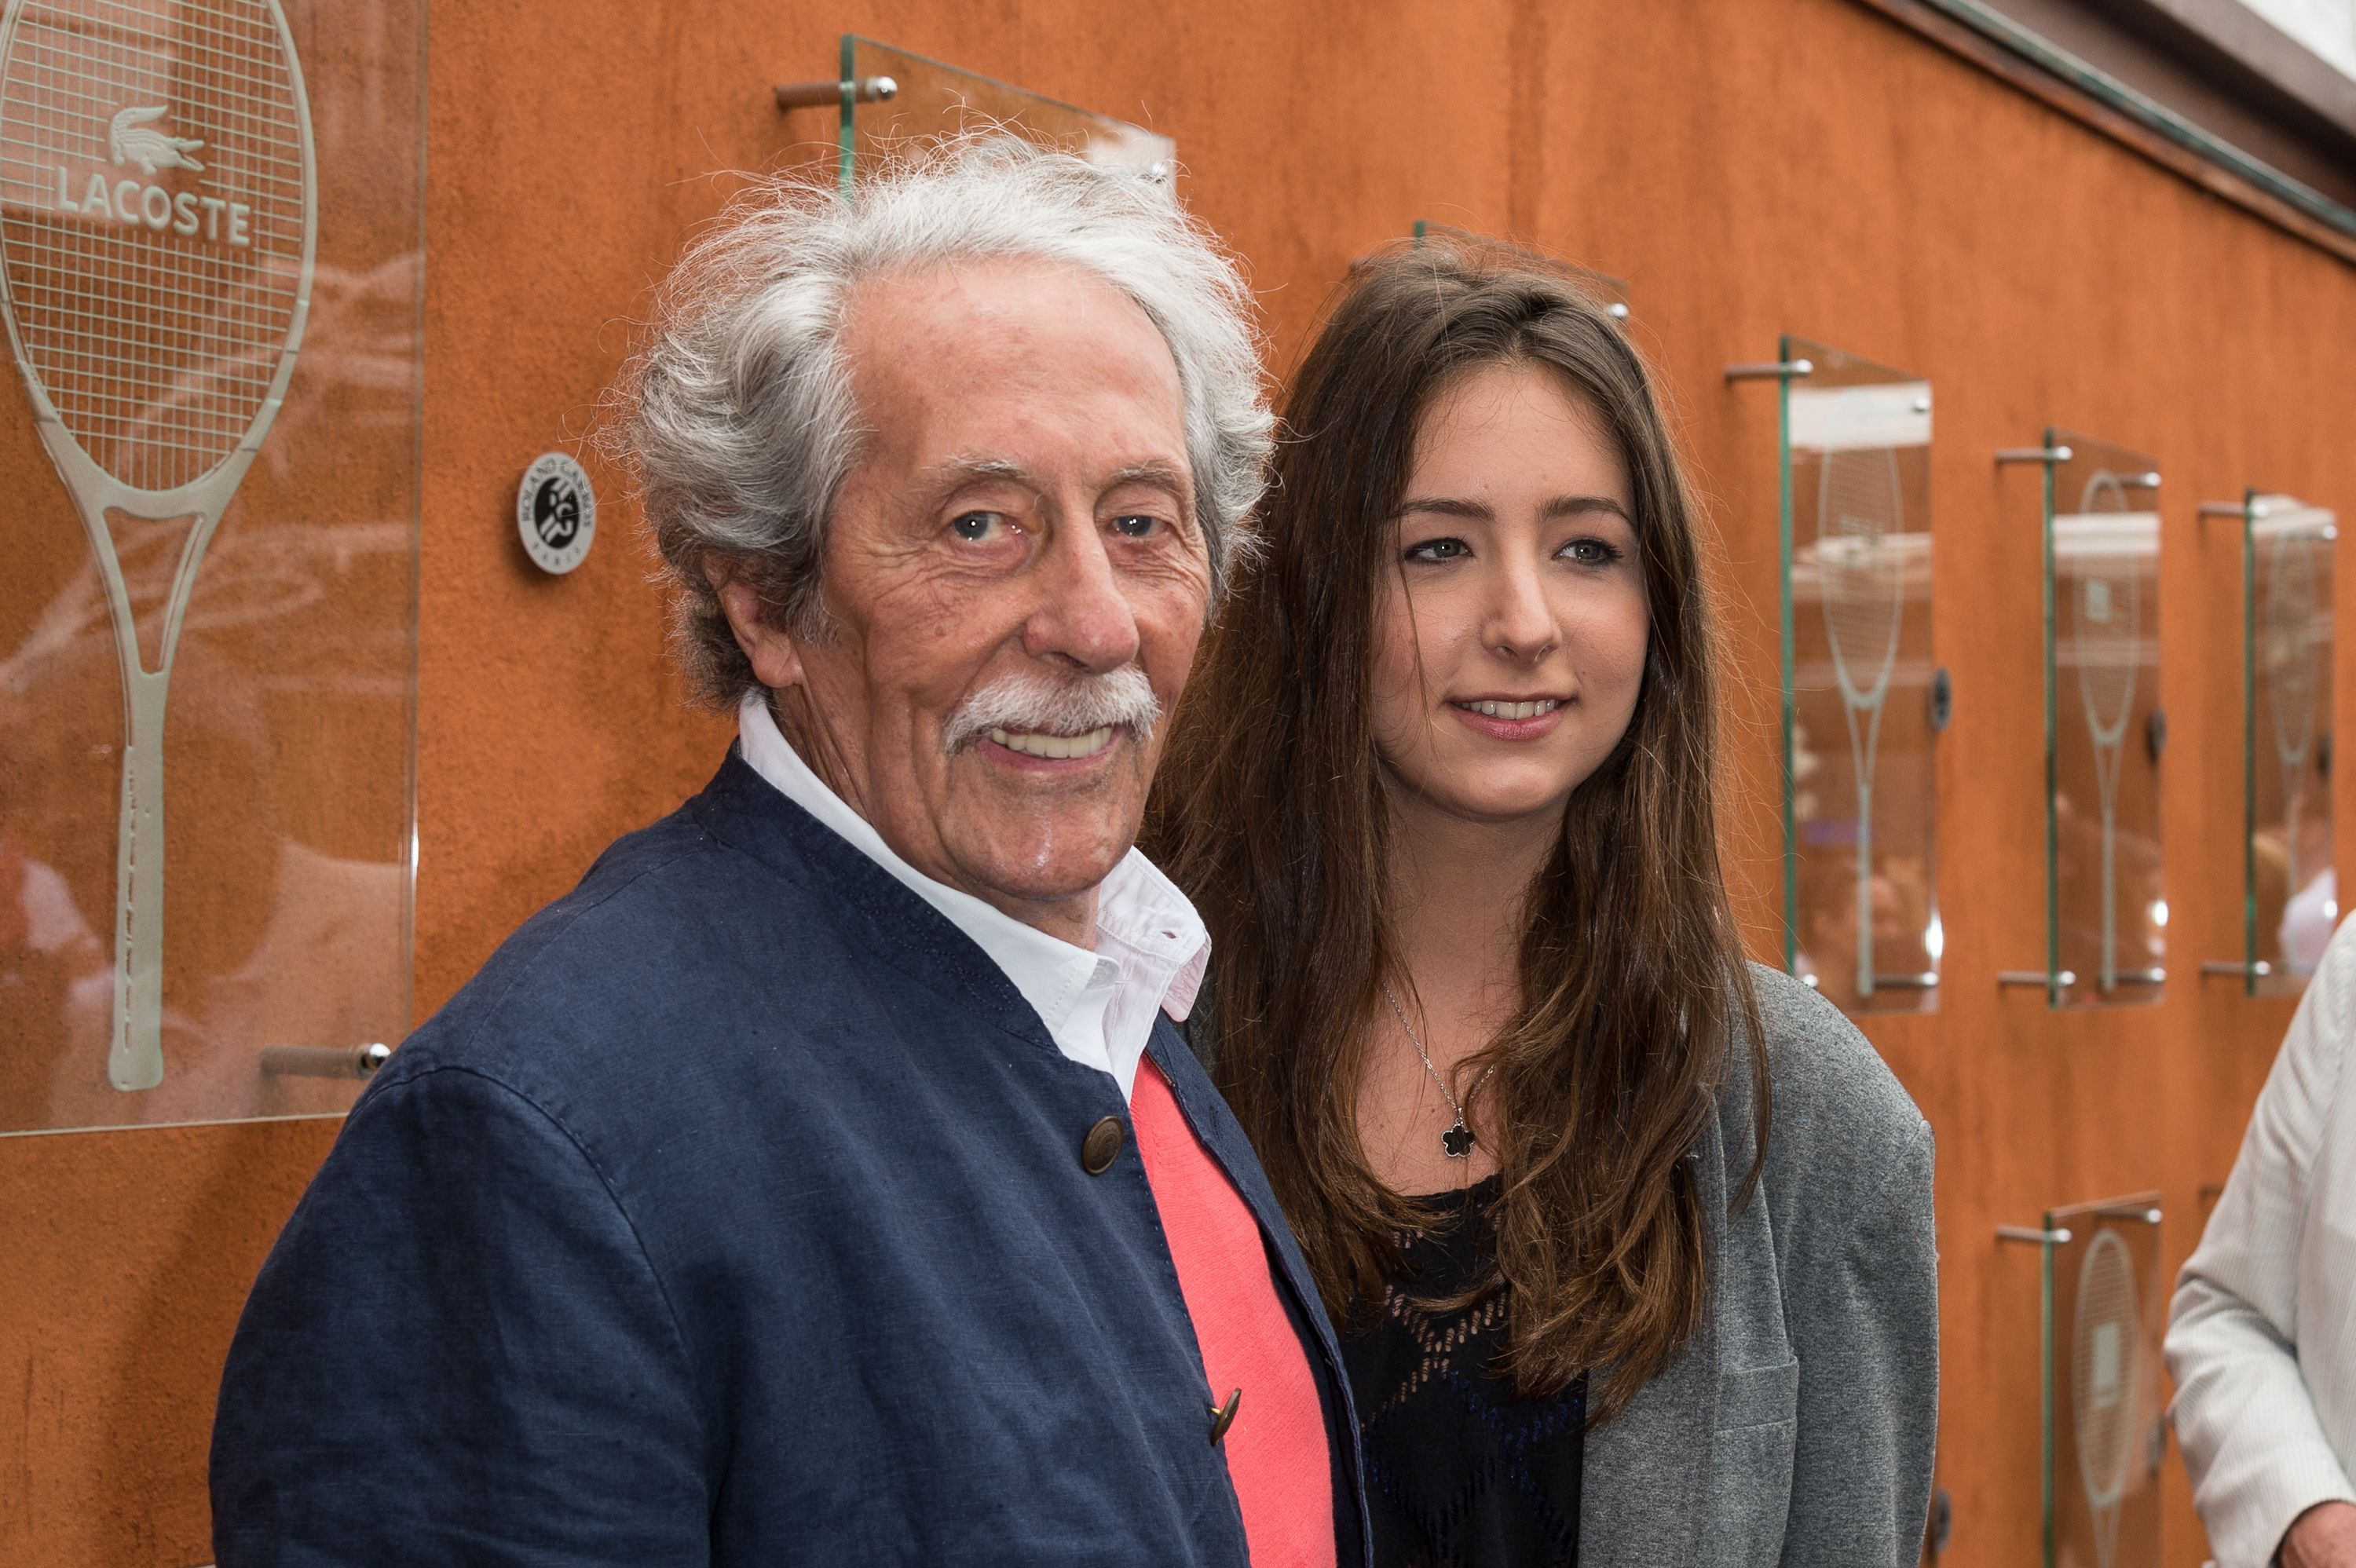 Jean Rochefort et sa fille Clémence Sighting à l'Open de France de Roland Garros le 1 juin 2012 à Paris, France. | Photo : Getty Images